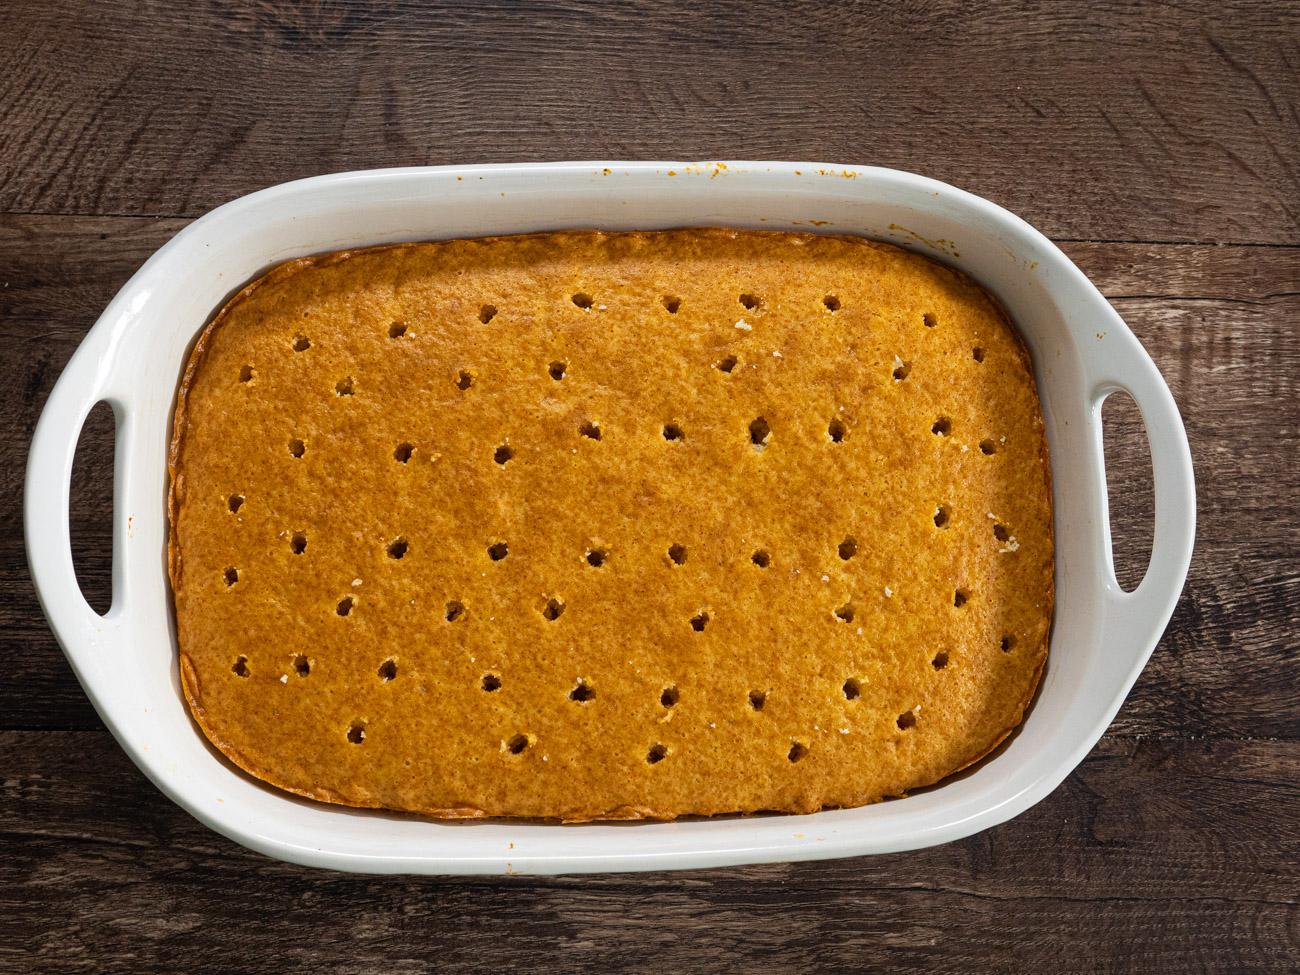 Remove the cake from the oven and allow to cool. Once cooled, use the handle of a wooden spoon to poke holes in the cake every inch or so, only pressing down halfway.